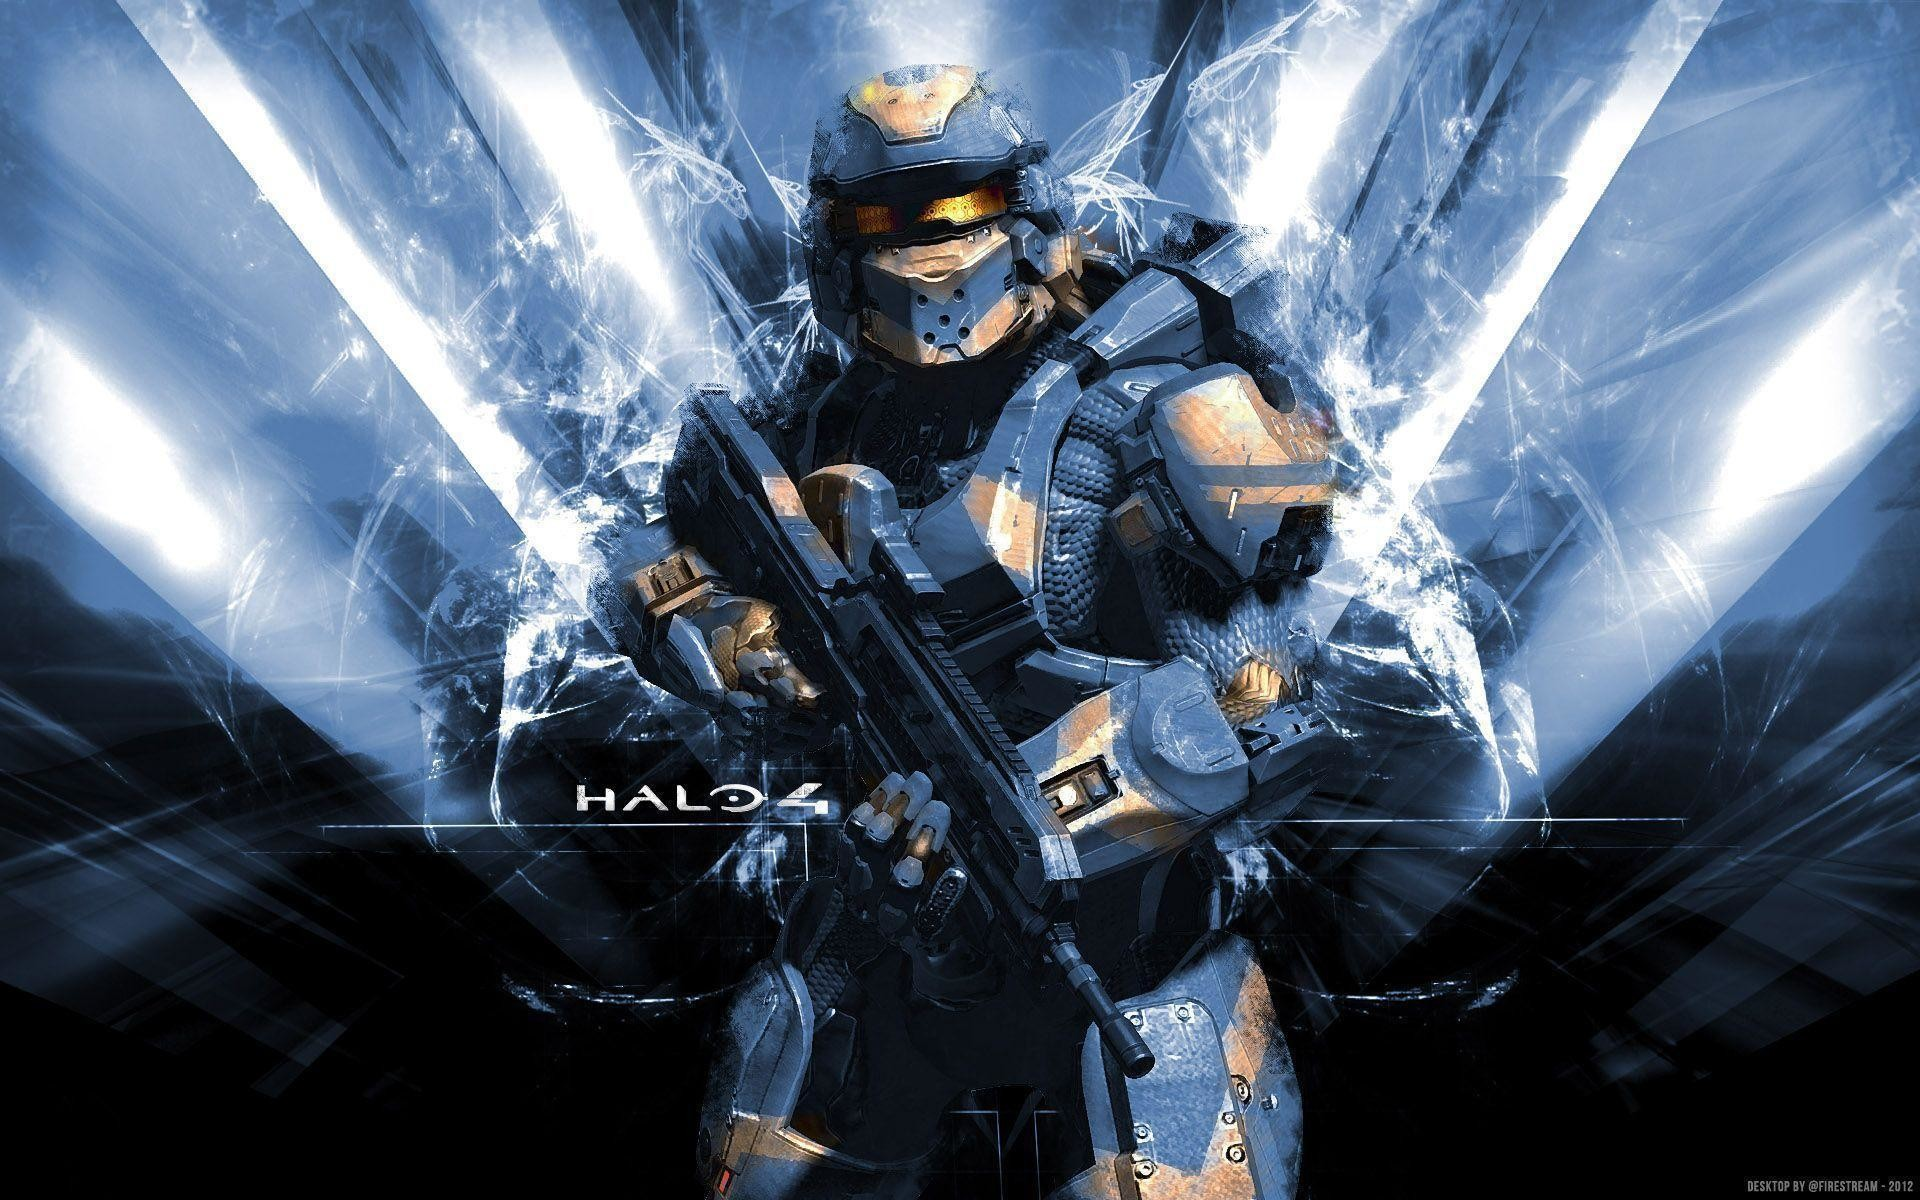 Cool Halo 4 Wallpapers 111355 Best HD Wallpapers   Wallpaiper.